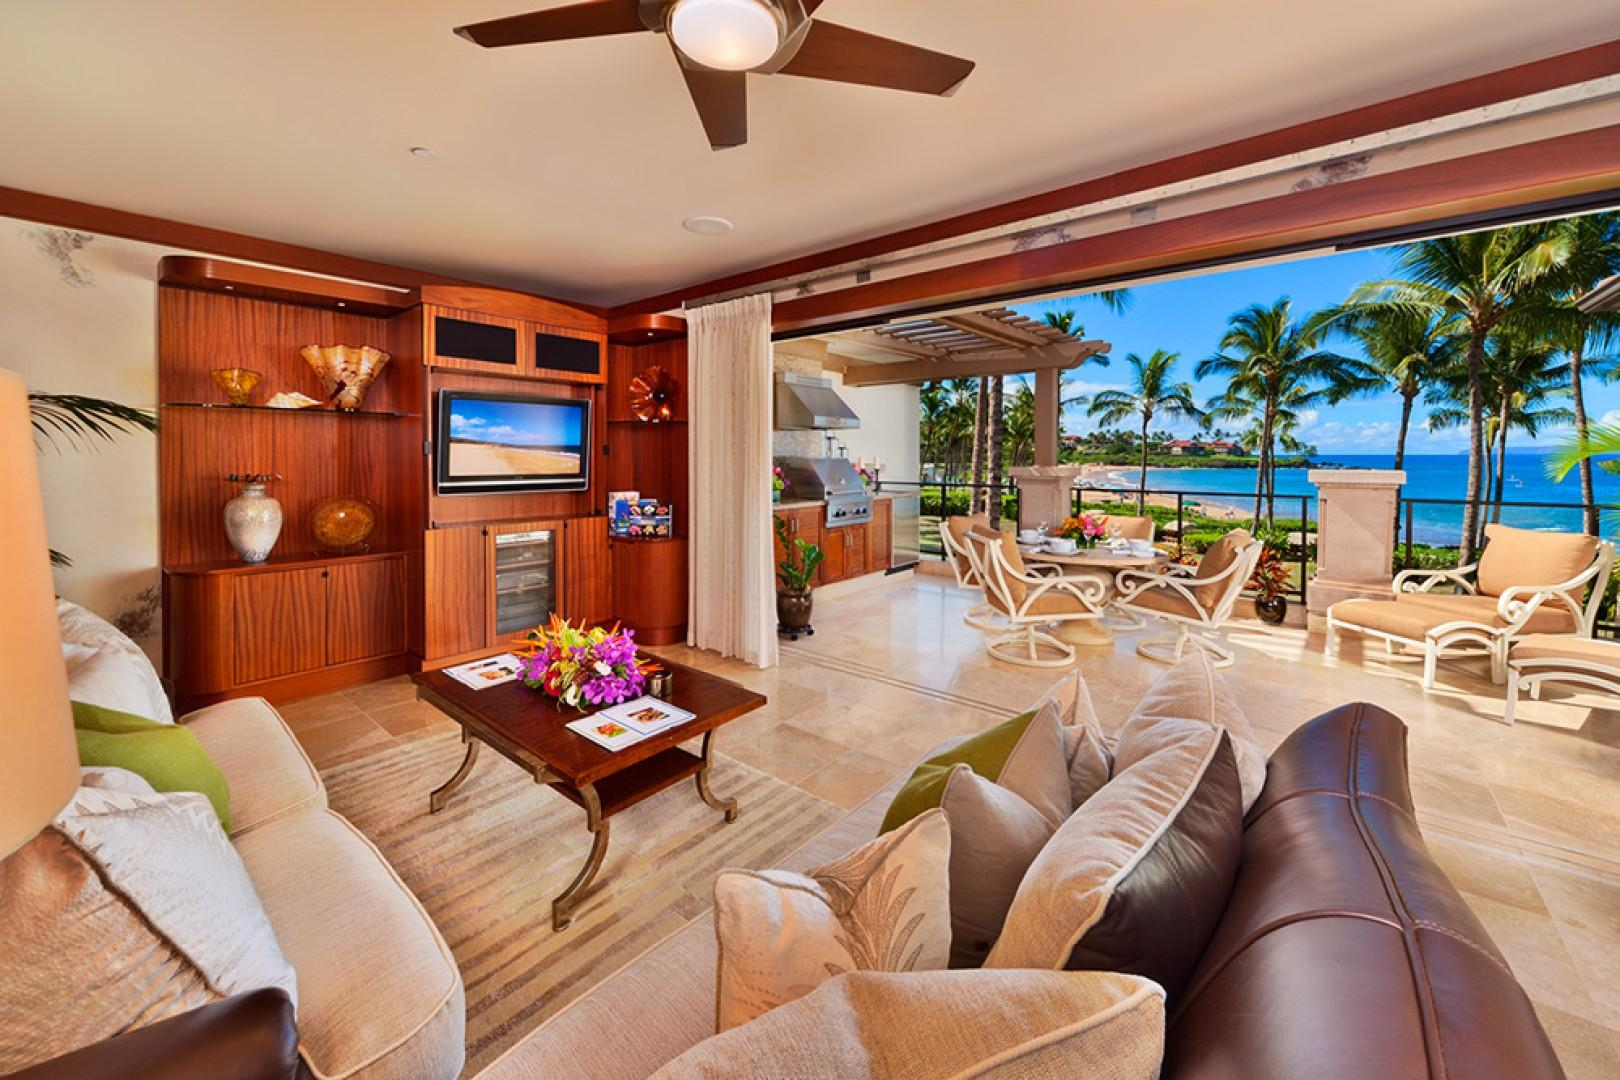 The Beautiful Great Room of A201 Royal Ilima - Looking Towards Wailea Beach. Live Plants, Custom Cabinetry, Down-Filled Furniture, Original Art, Pacific Rim and Tropical Artifacts, Gallery-Quality Decor